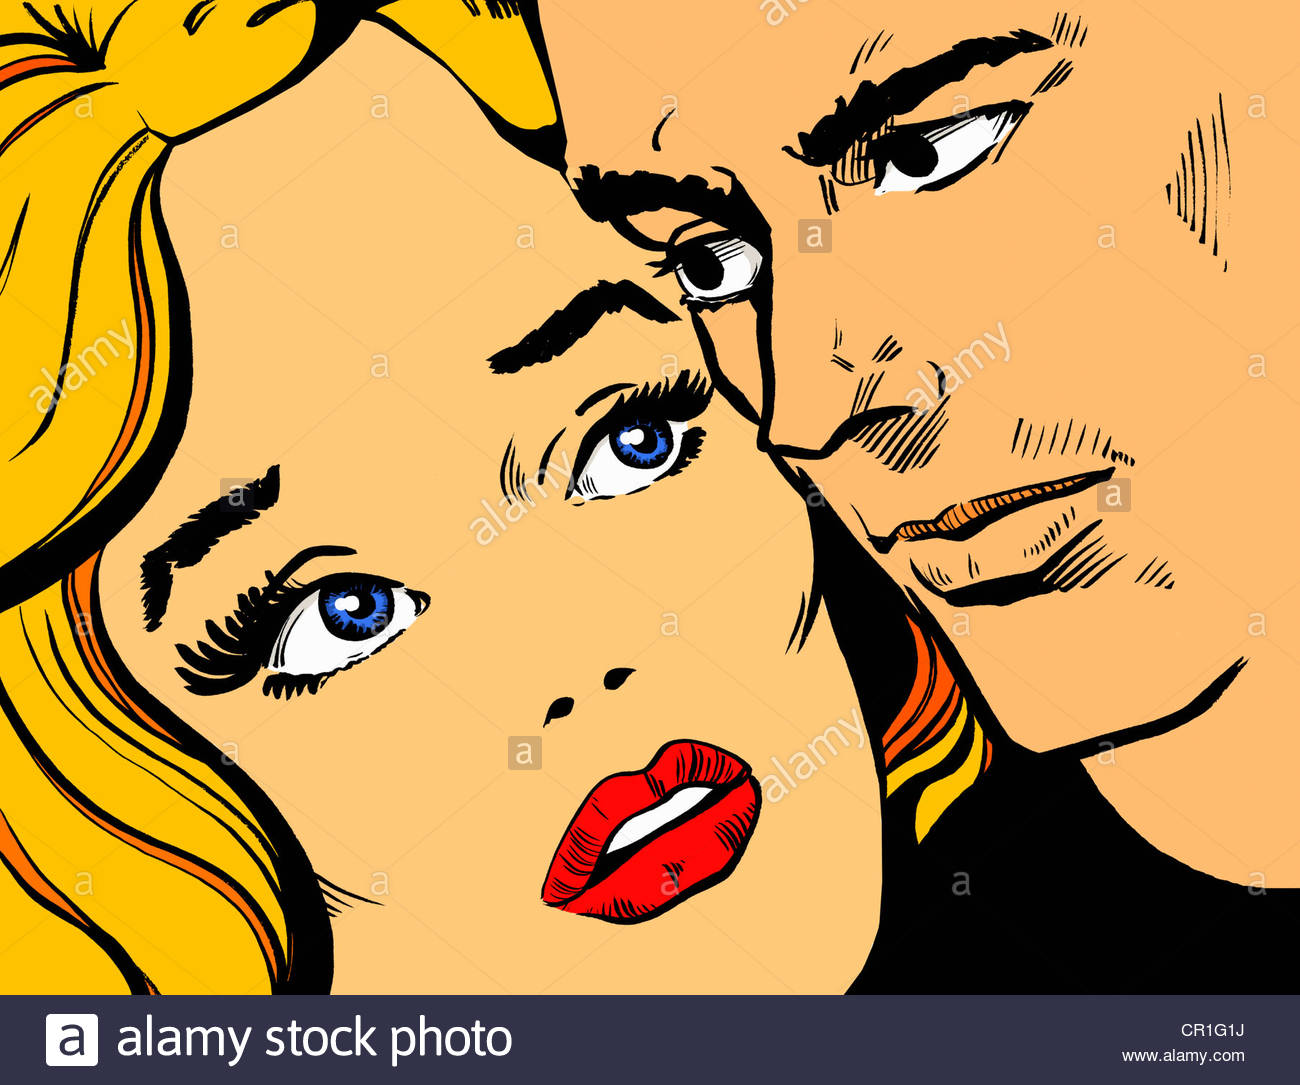 Close-up of couple's anxious faces - Stock Image